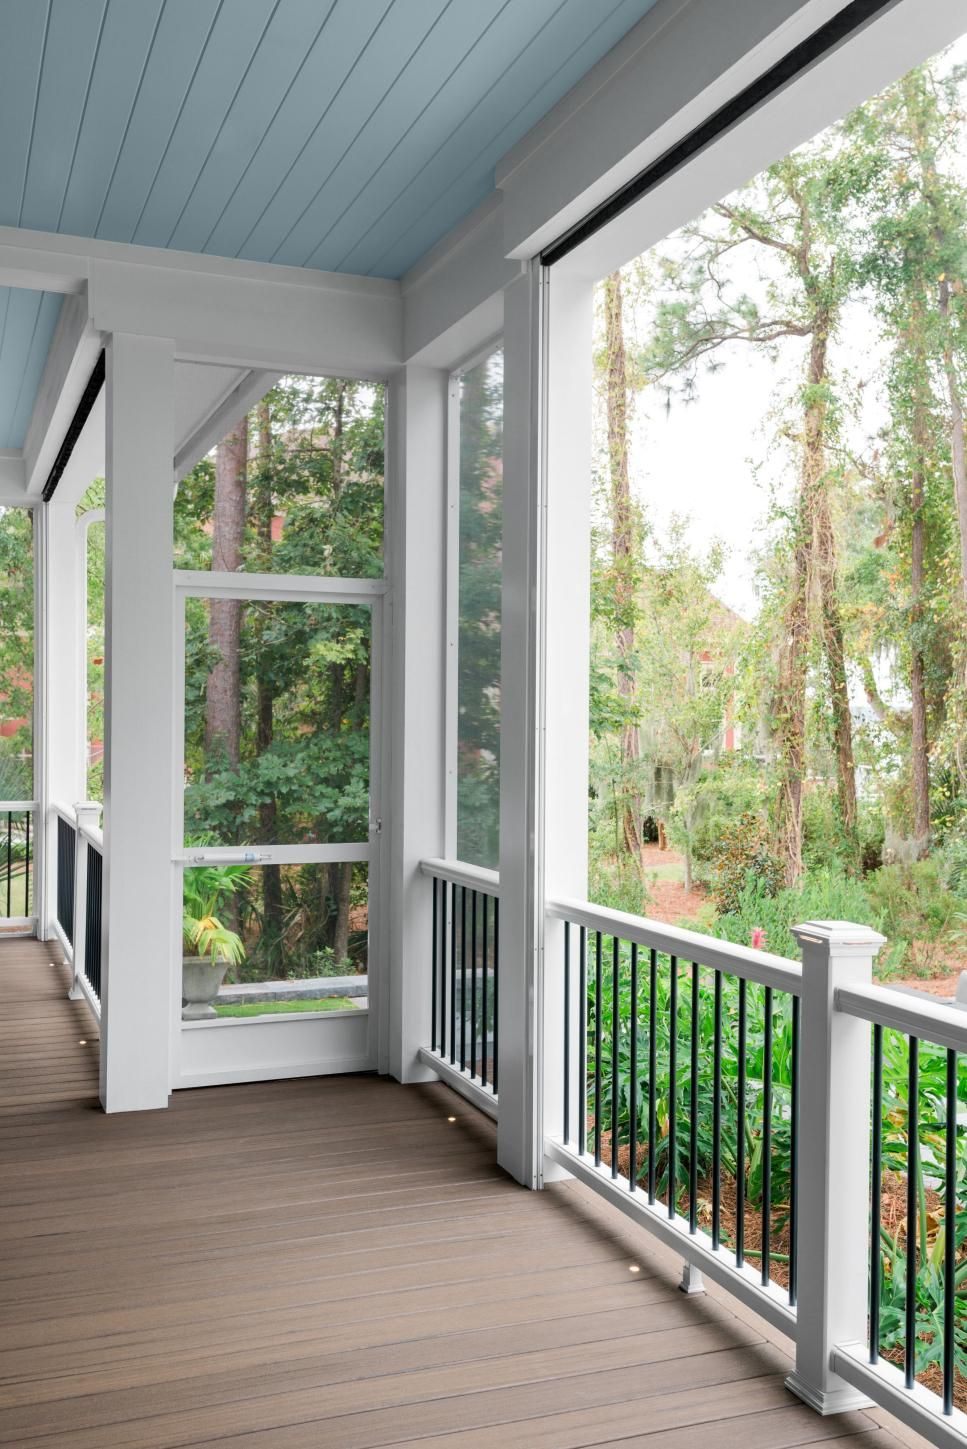 Hgtv Dream Home 2020 Screened Porch Pictures Hgtv Dream Home 2020 Hgtv Hgtv Dream Home Hgtv Dream Homes Screened Porch Designs